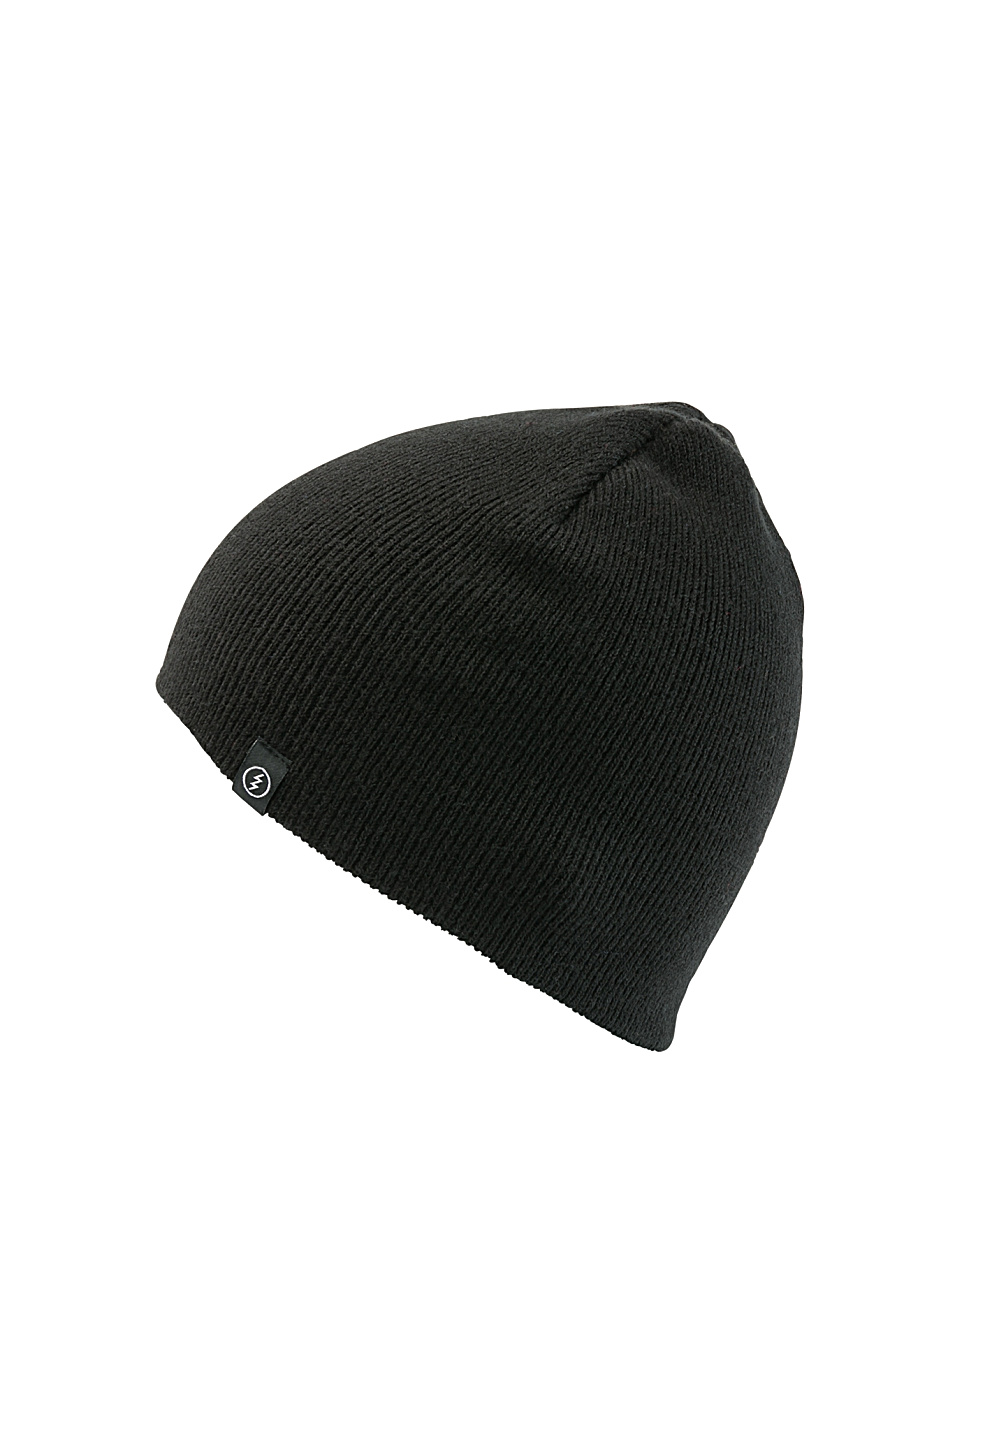 Electric Bender - Beanie - Black - Planet Sports 9628281ce26